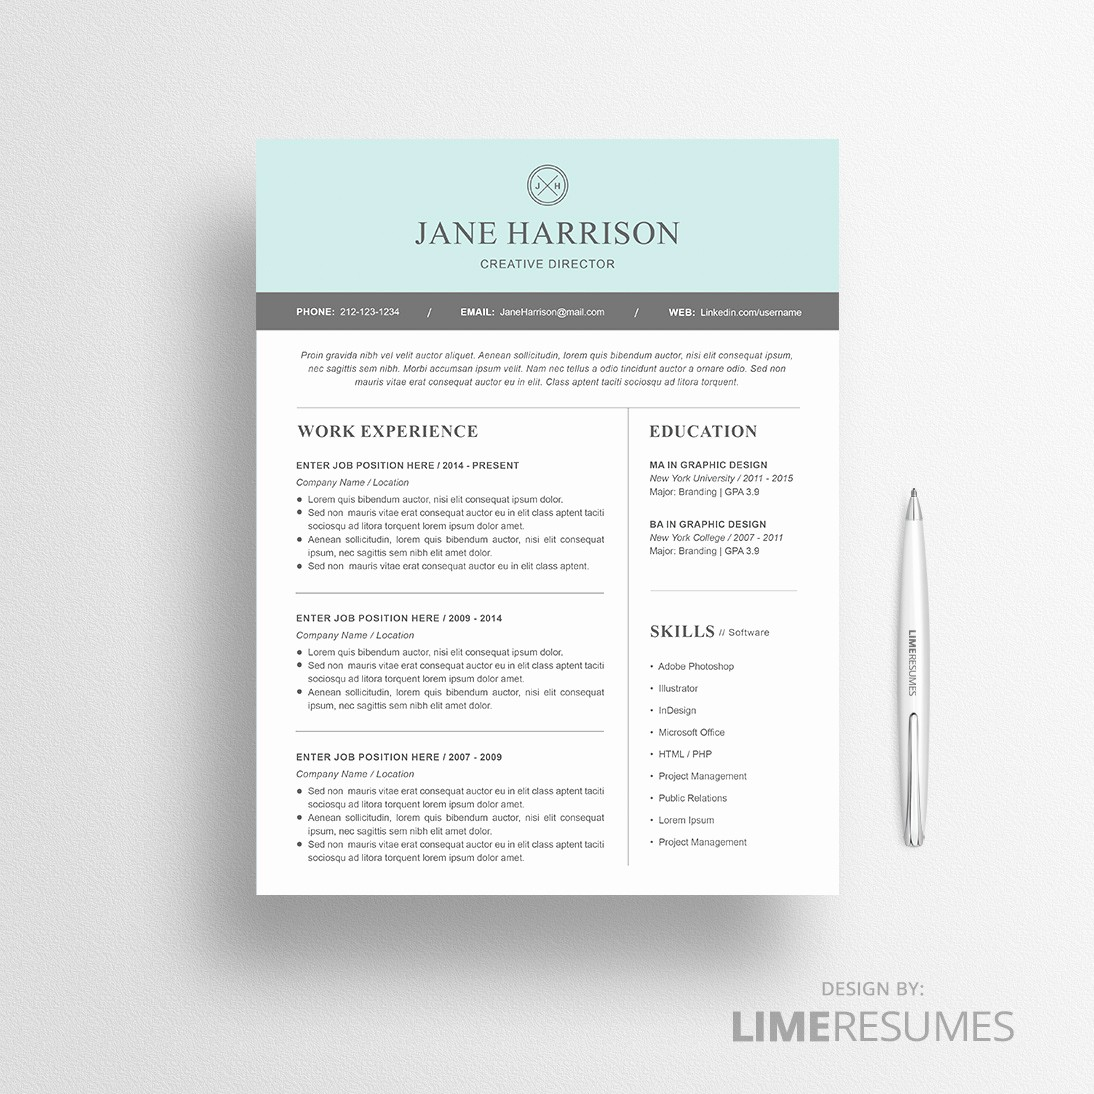 Best Free Word Resume Templates Beautiful Modern Resume Template for Microsoft Word Limeresumes